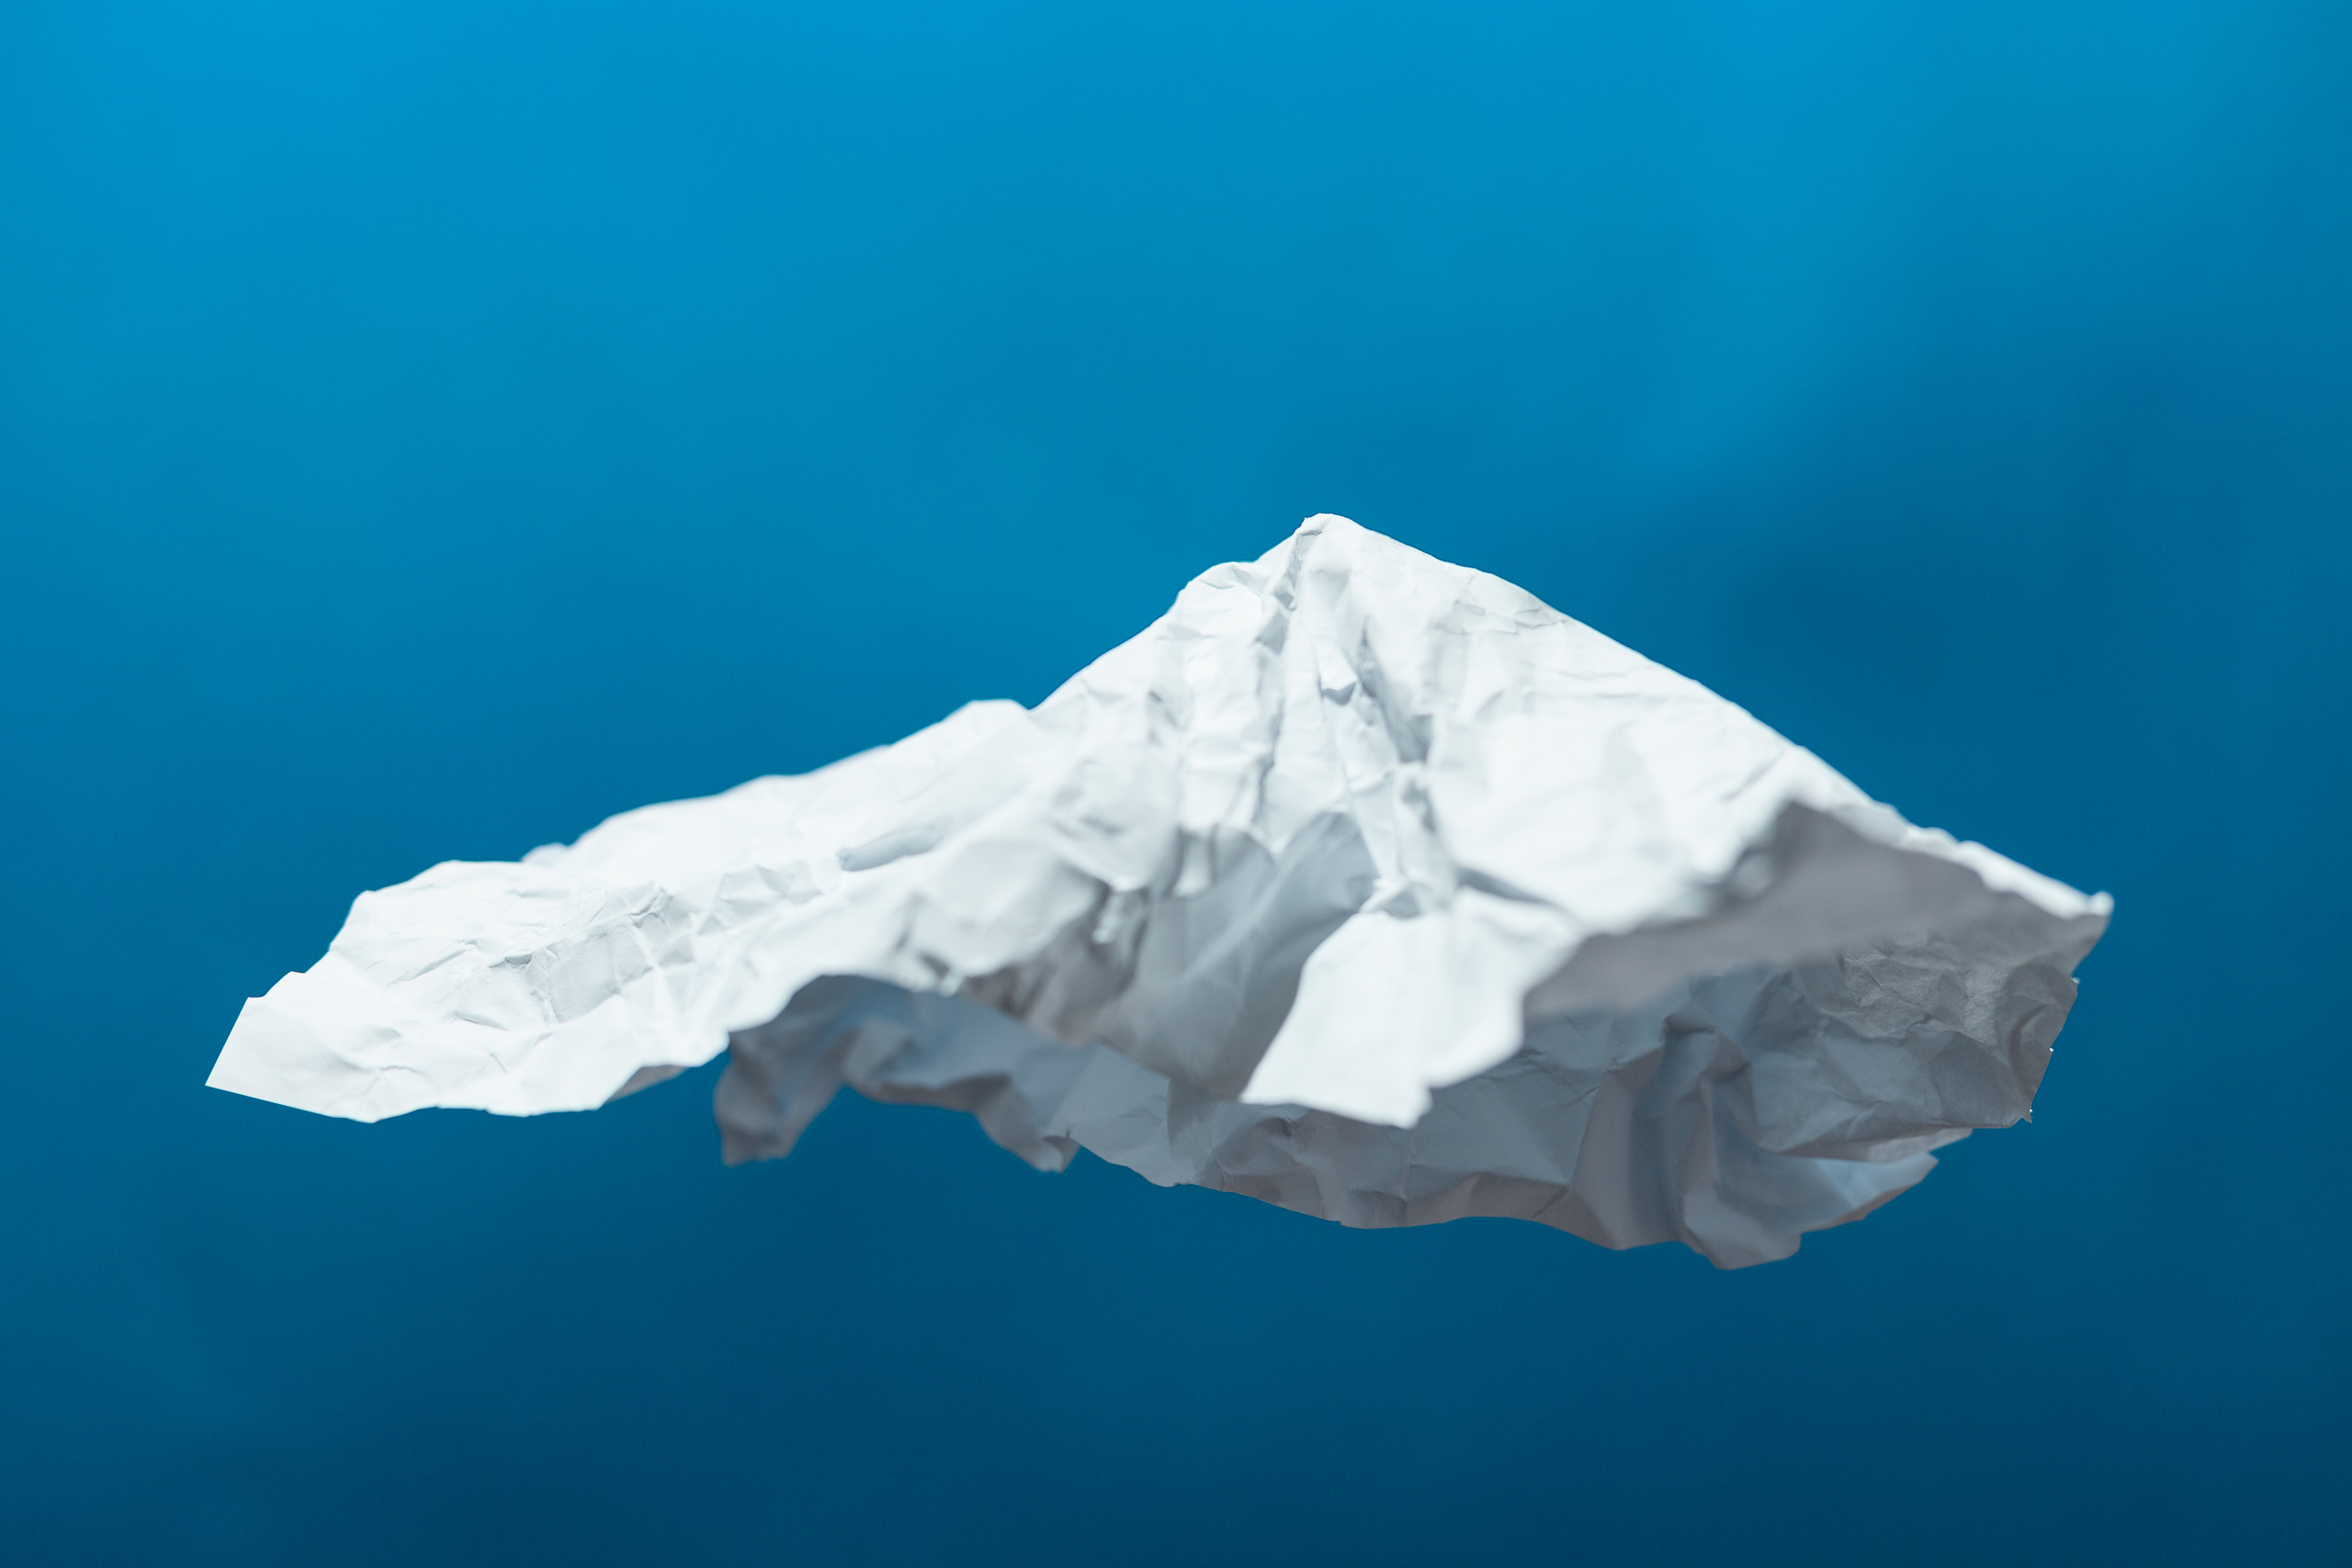 mountain made of paper sheet